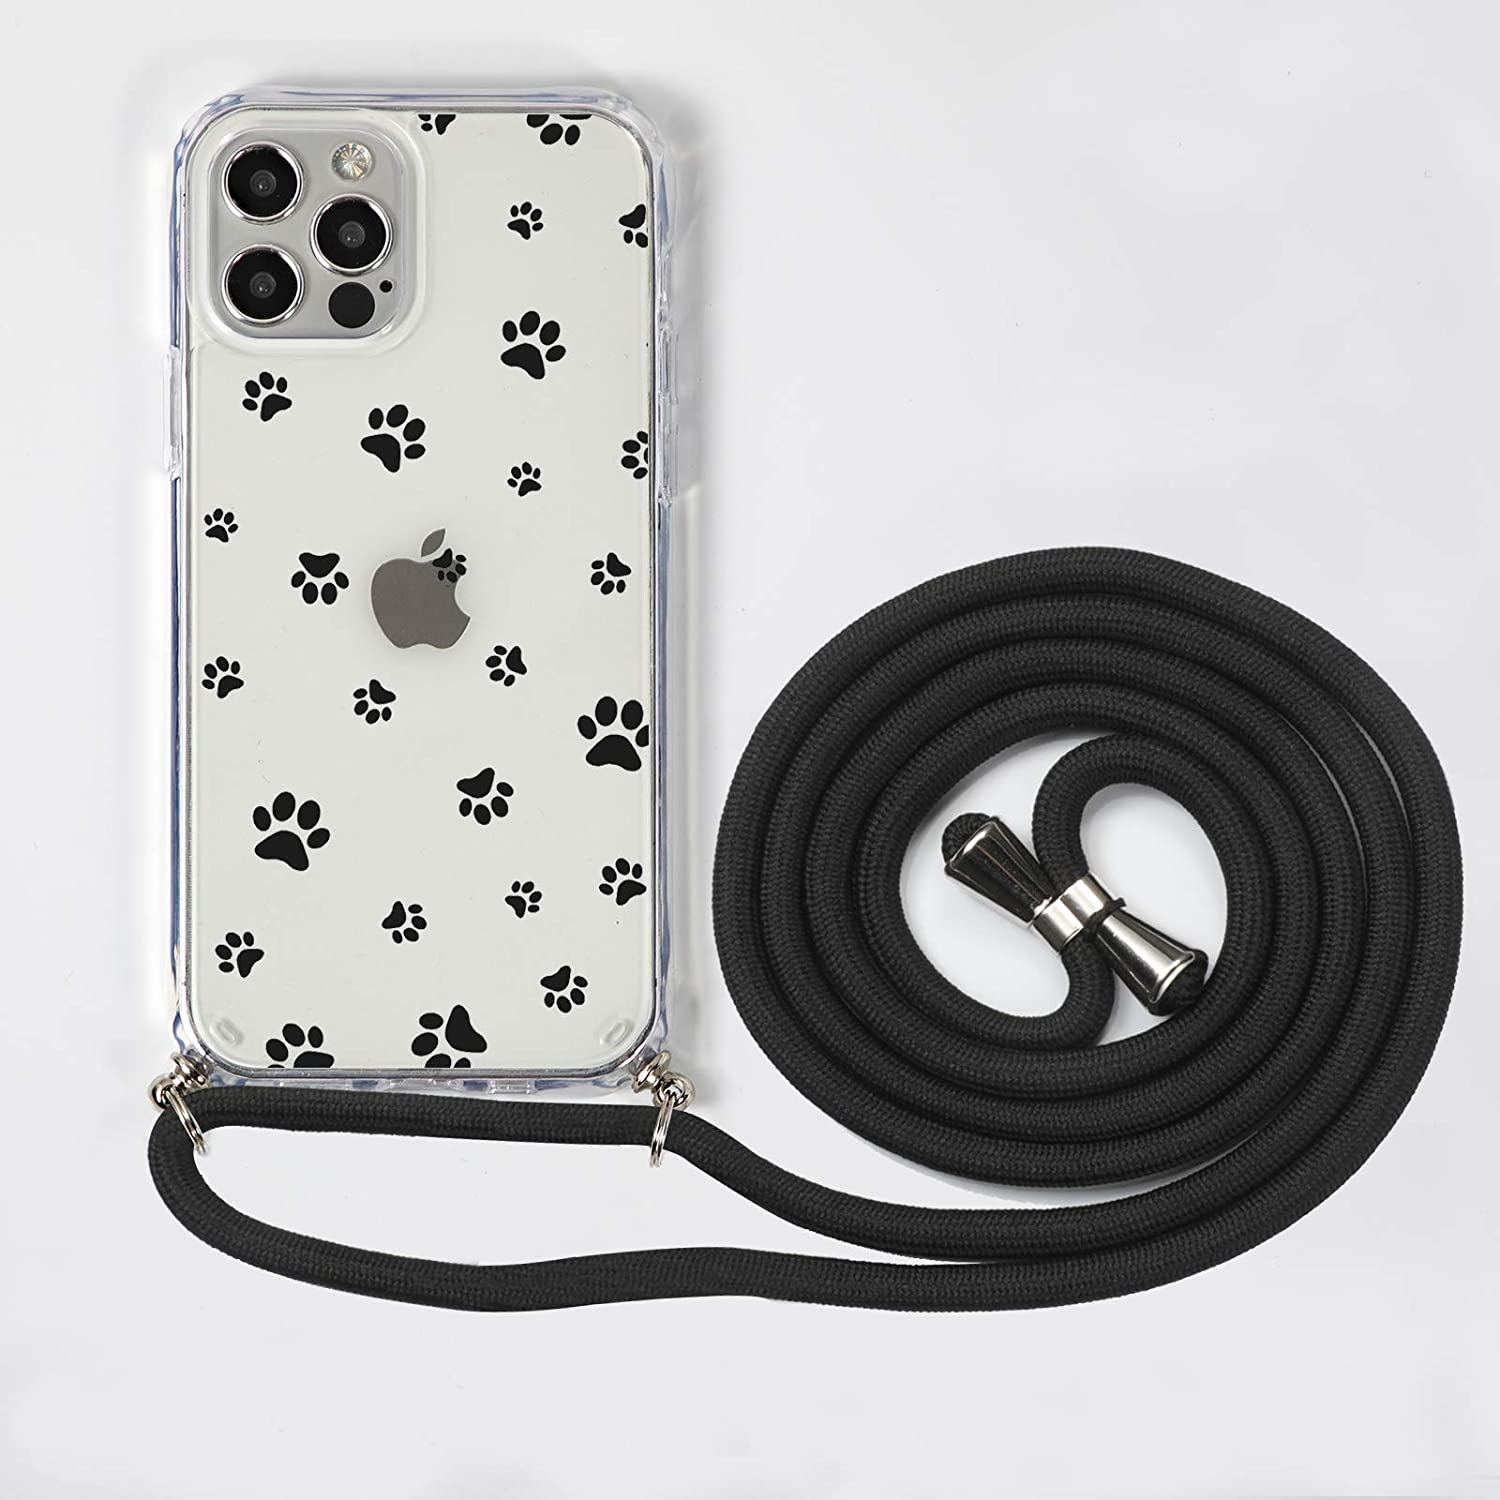 iPhone 12/12 Pro Crossbody Lanyard case,SZINTU Cute Pattern Clear Design Transparent Hard PC Back+Soft TPU Frame Anti-Fall and Shockproof Protective Cover with Adjustable Nylon Neck Strap(Footprint)